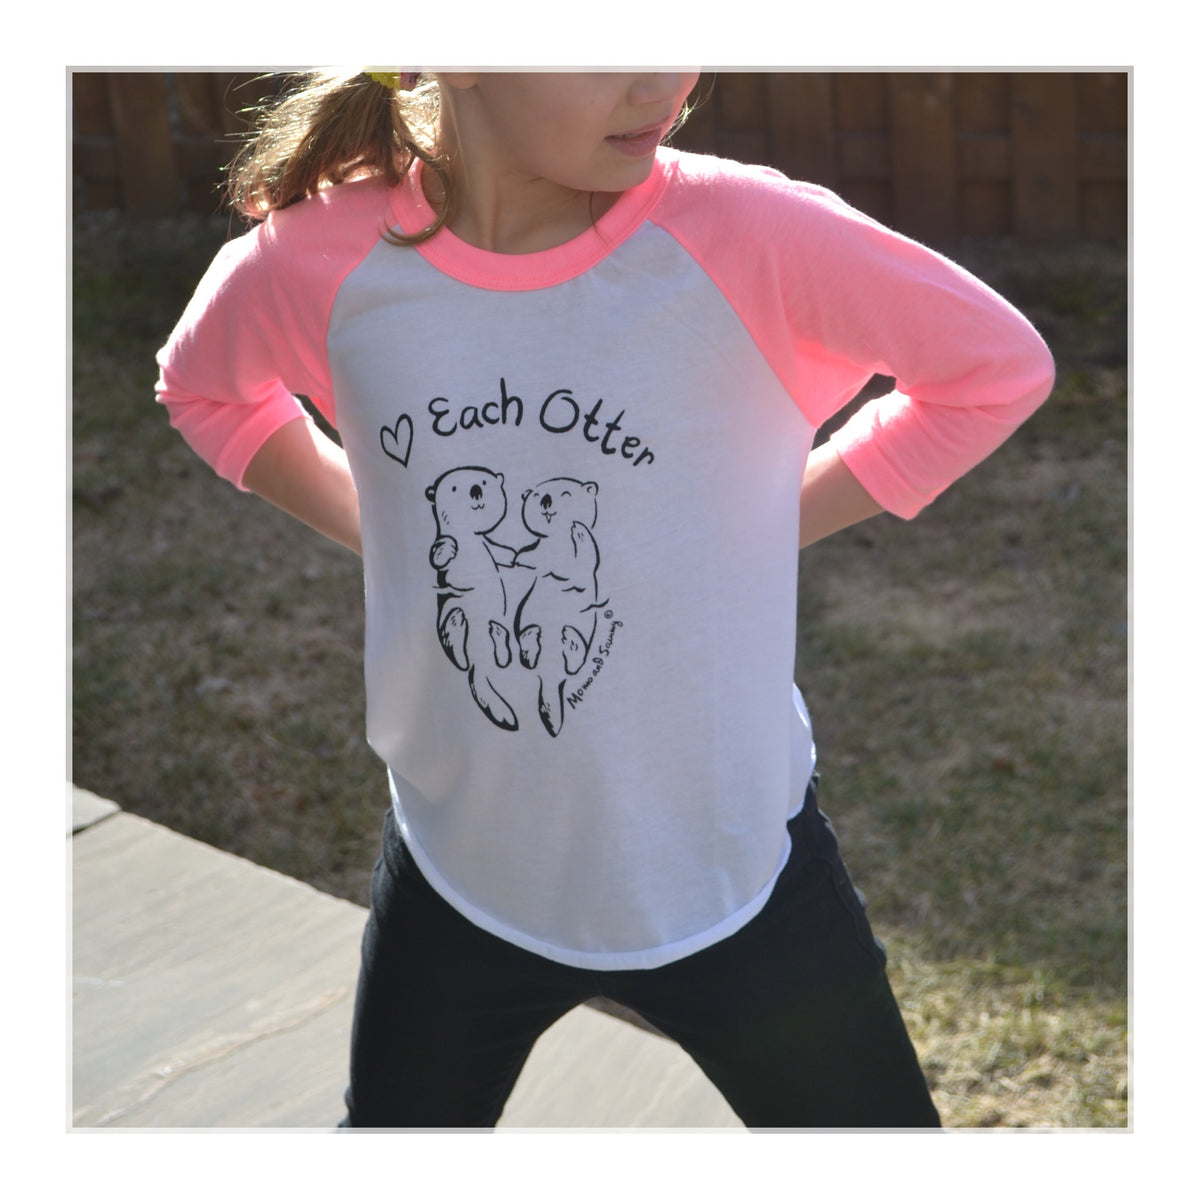 LOVE EACH OTTER - Kids Baseball Tee